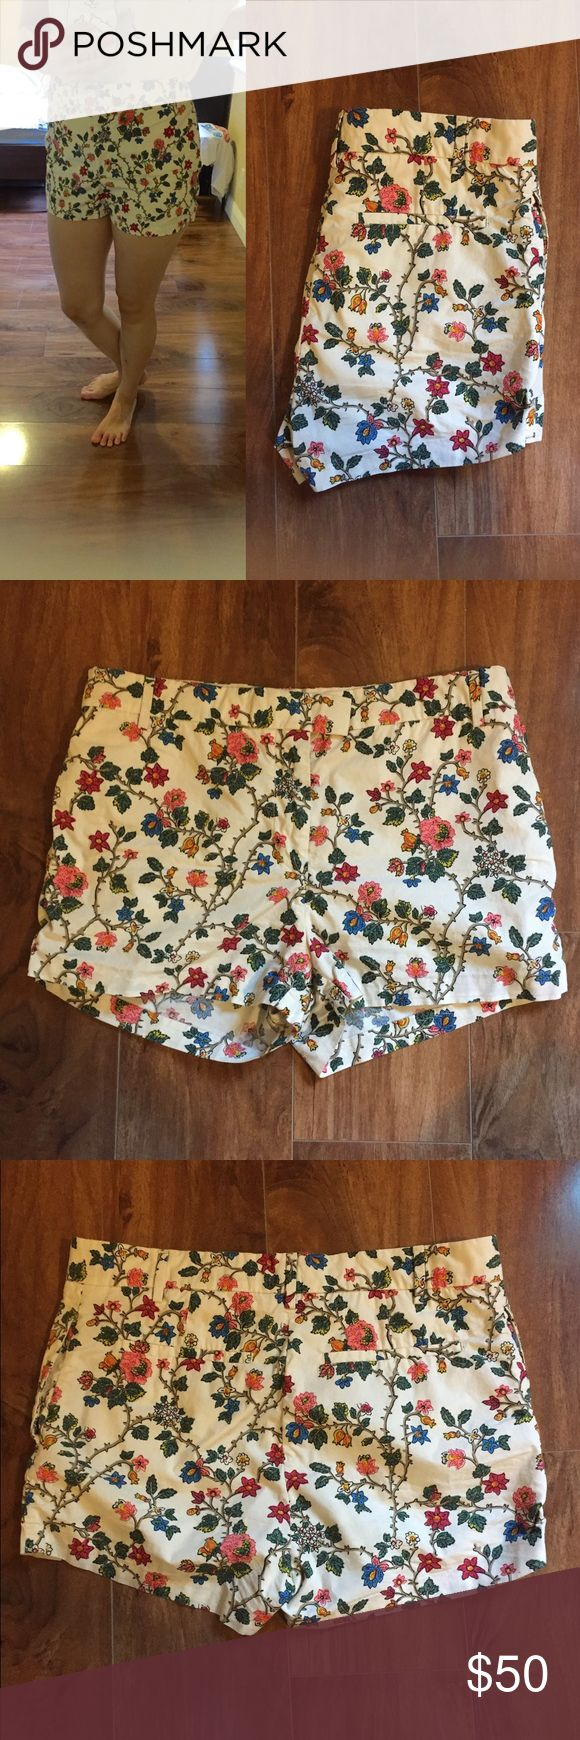 "COS High Rise Floral Shorts Worn only a handful times and washed once. Beautiful floral print. Love these shorts but the waist is too big on me. Purchased at COS store in Barcelona. Inseam approx 2 1/4"" Rise 10"" Waist 16"". Size EUR 38. 100% cotton. 2 side pockets and 2 pocks in the back. COS Shorts"